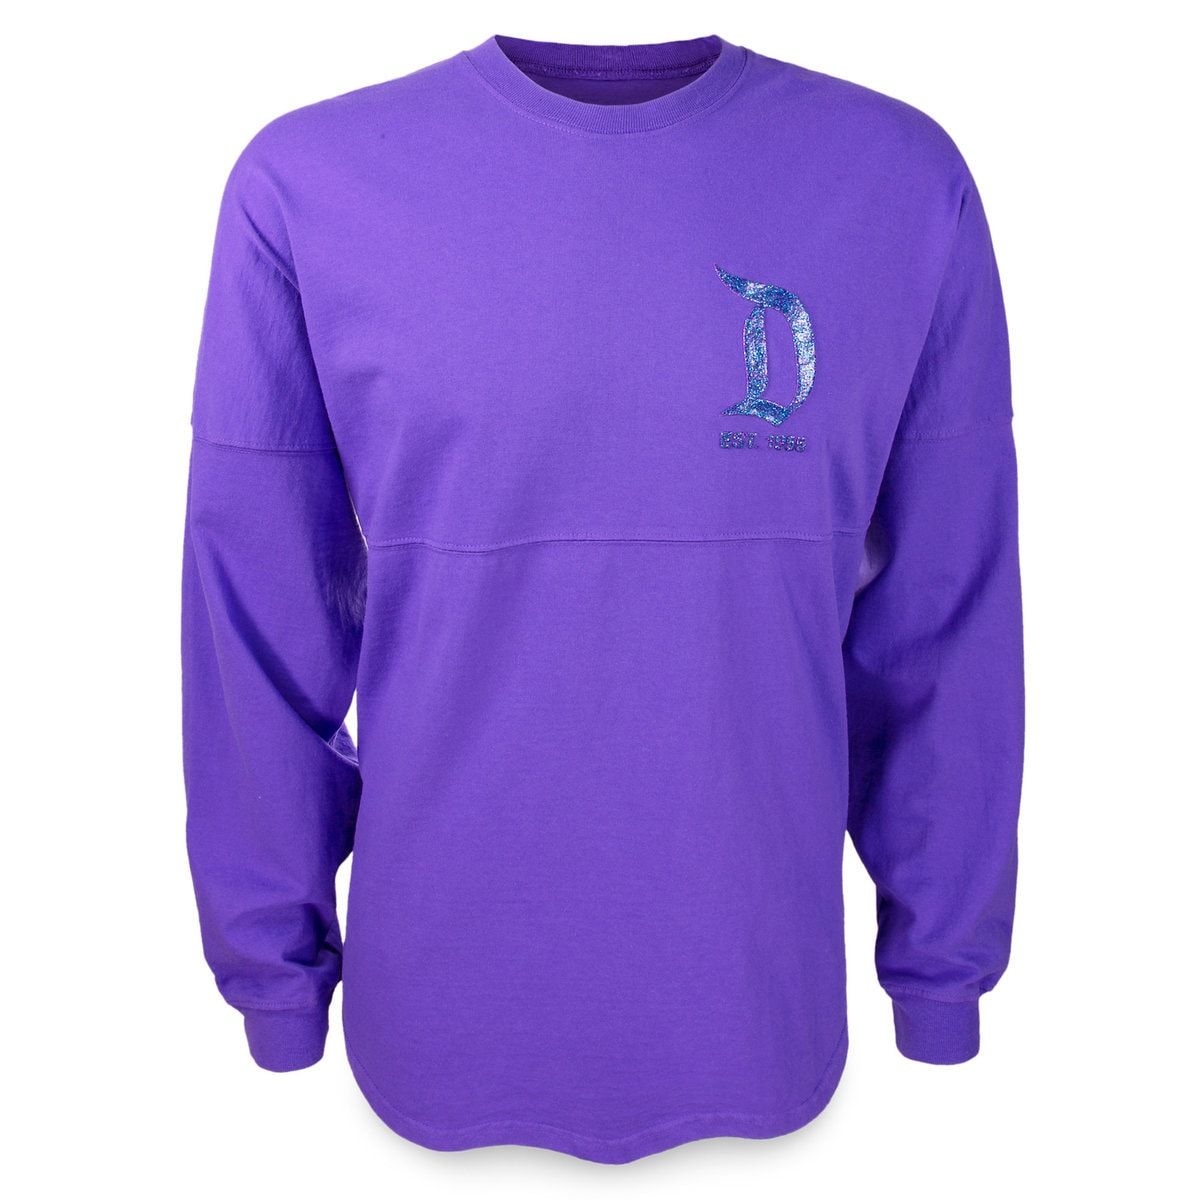 60470de46 Product Image of Disneyland Spirit Jersey for Adults - Potion Purple # 1